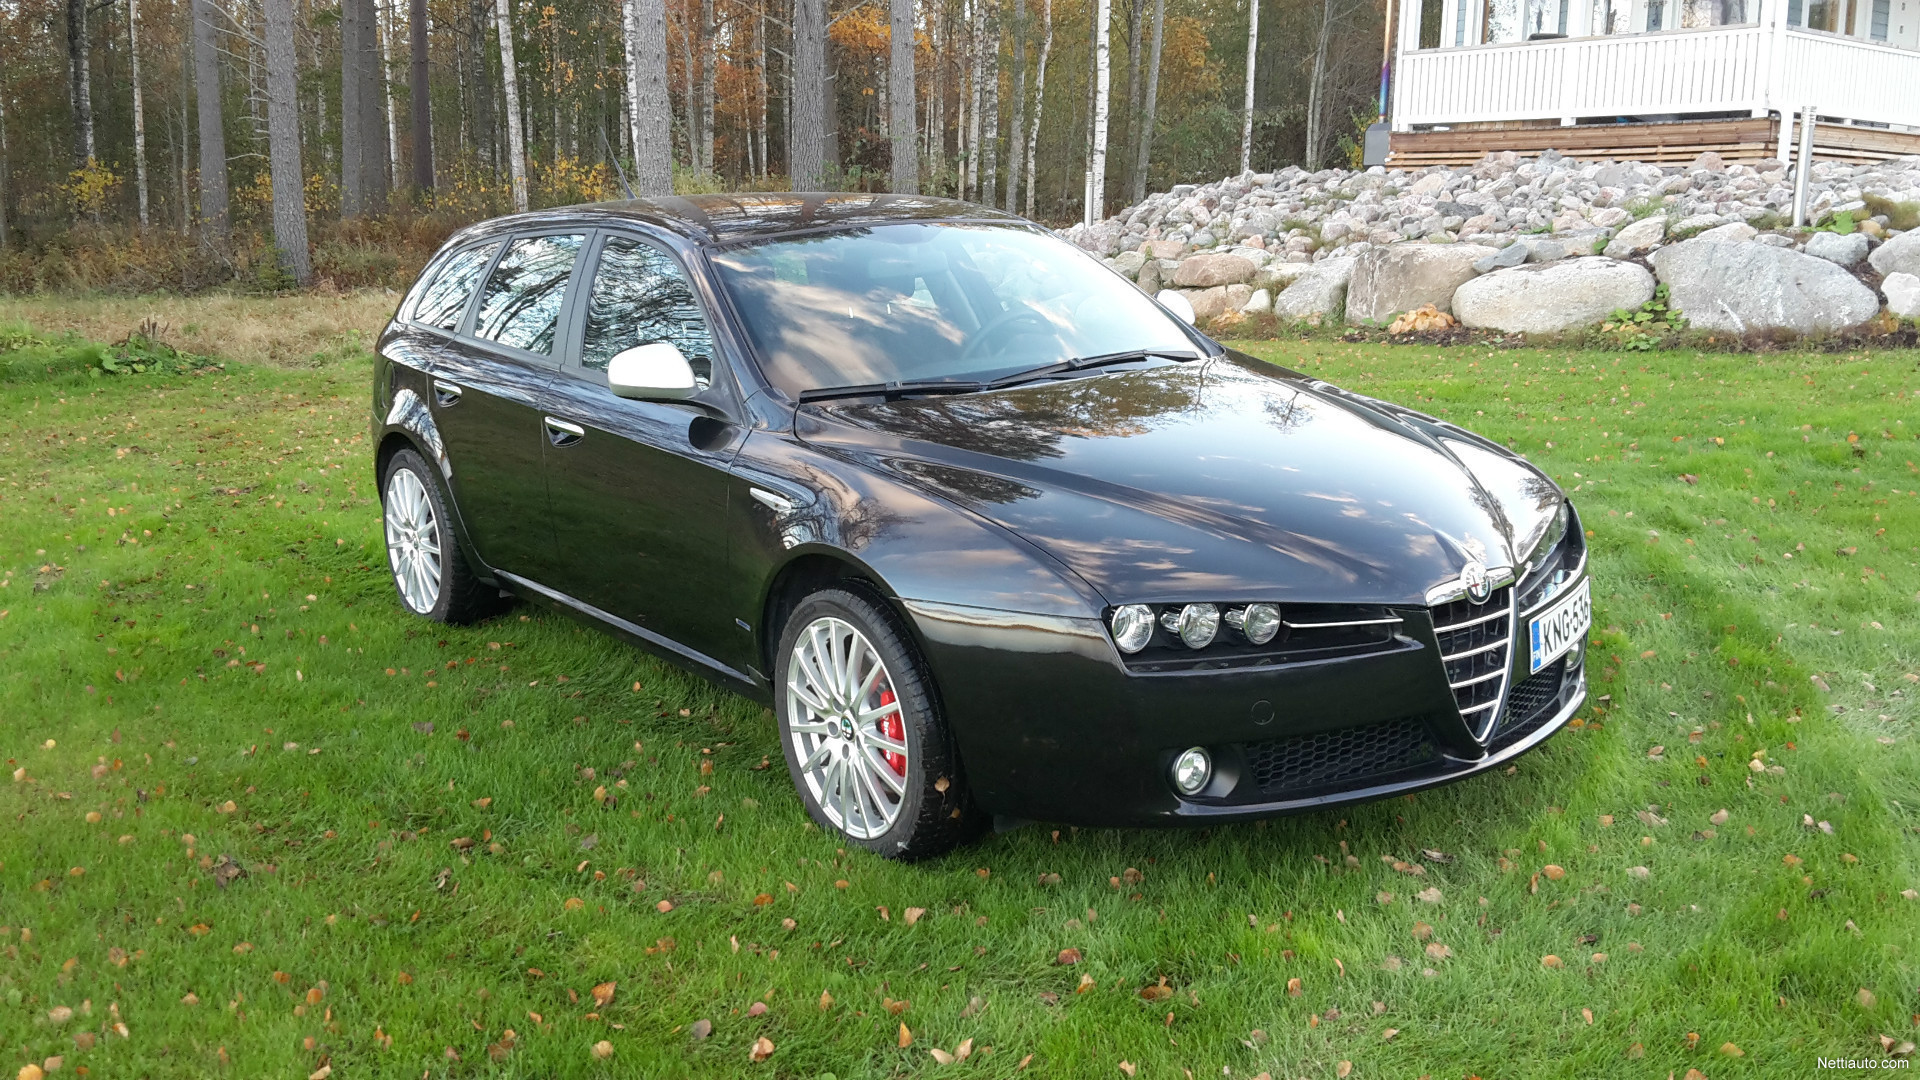 alfa romeo 159 sportwagon 3 2 jts v6 q4 station wagon 2007 used vehicle nettiauto. Black Bedroom Furniture Sets. Home Design Ideas